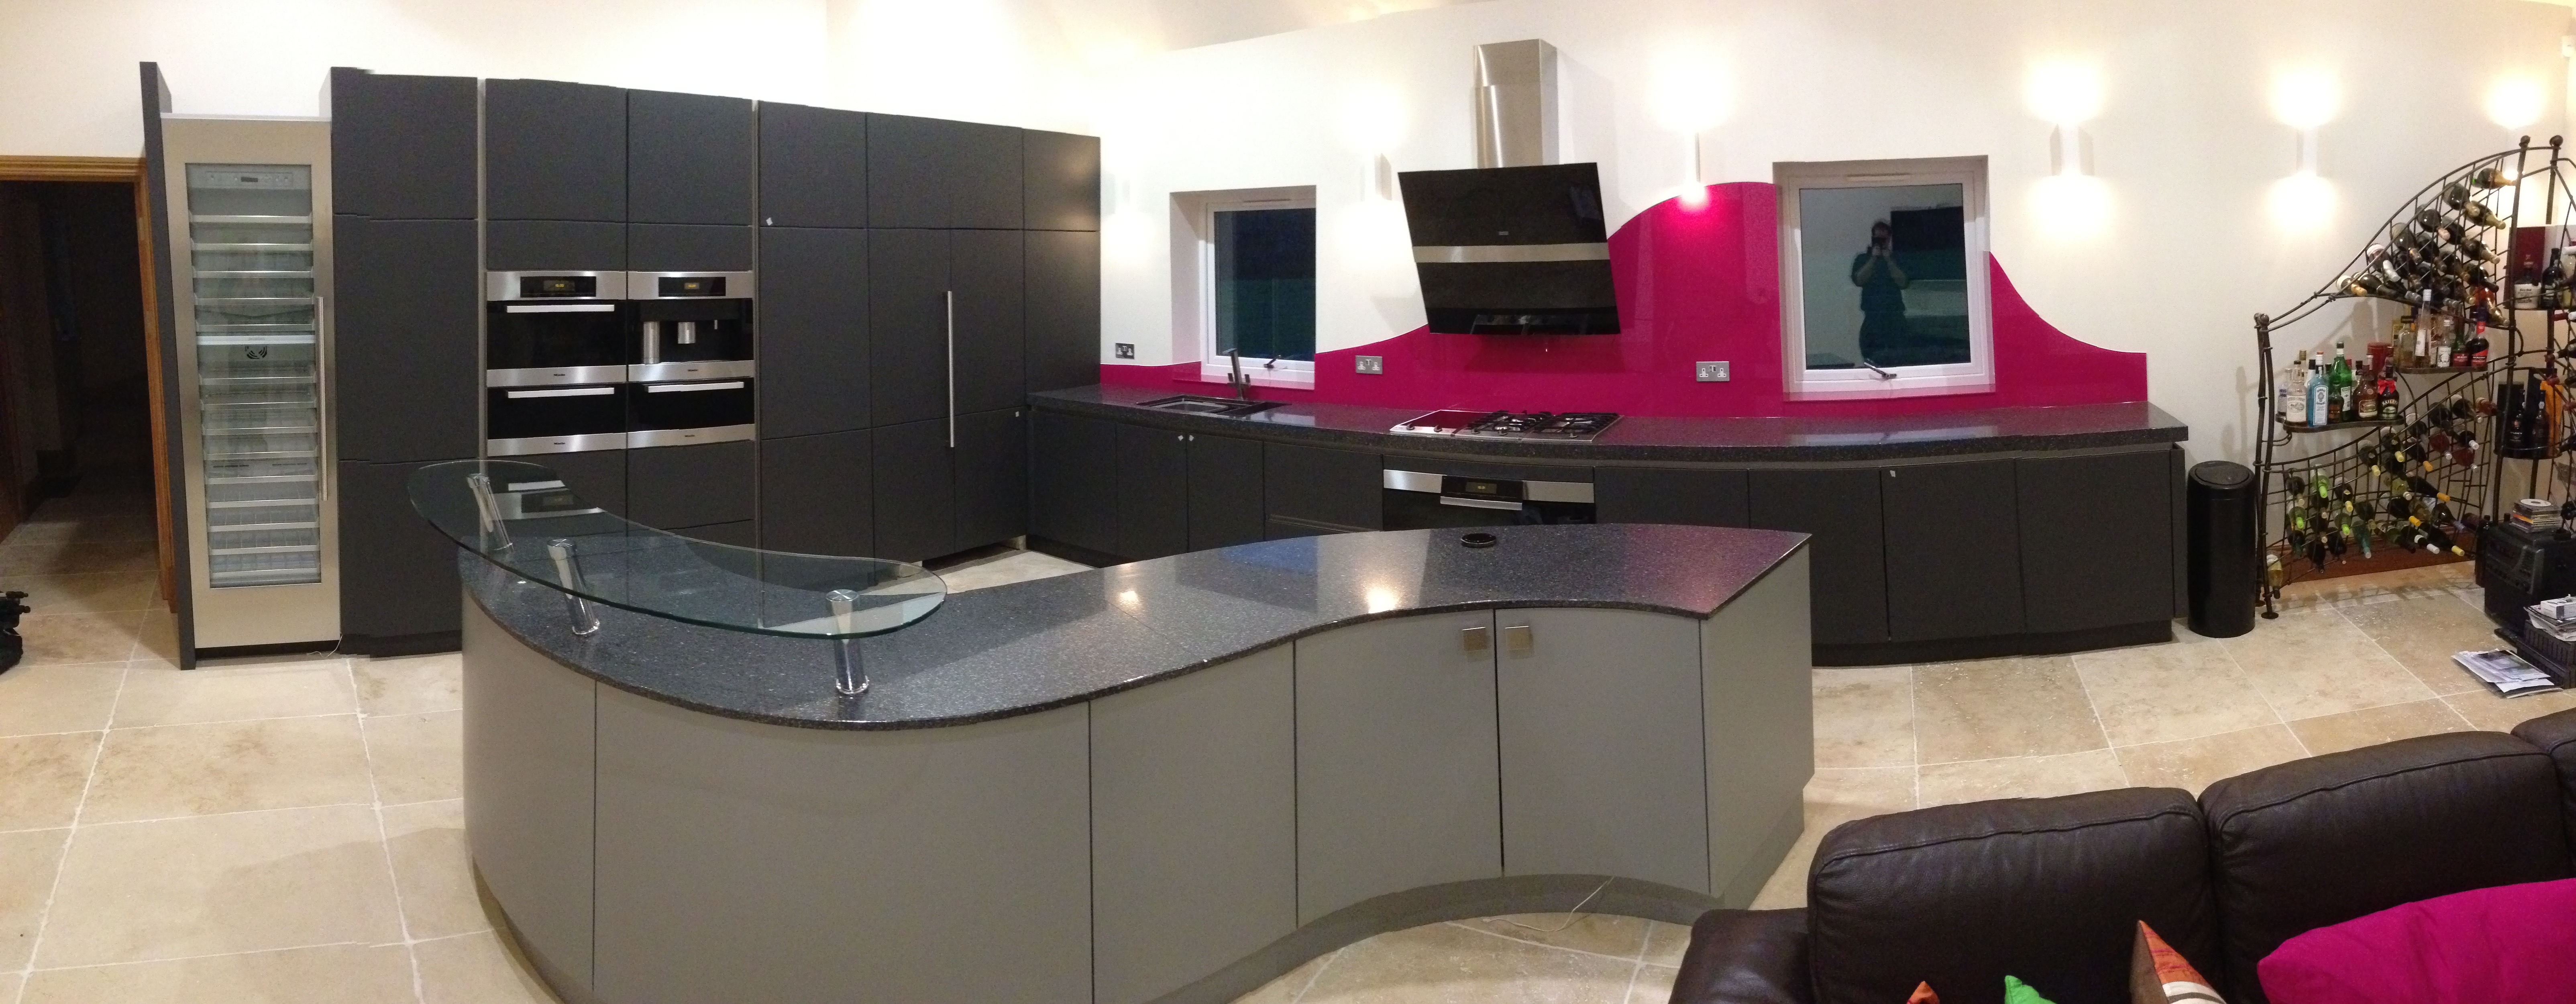 kitchen purple splashback